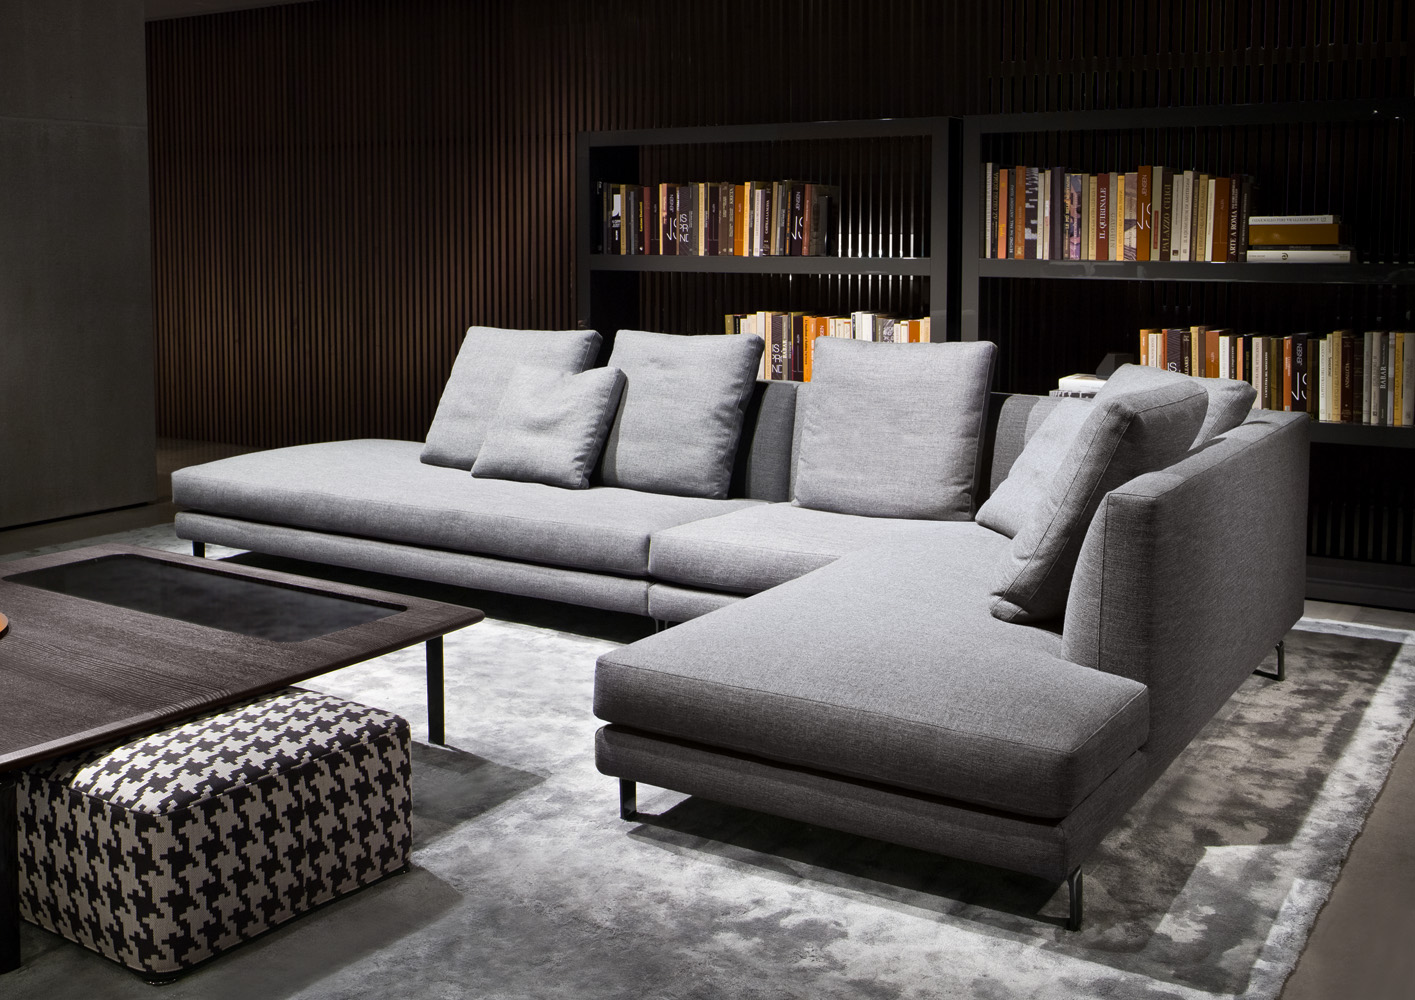 20 modish minotti sofas and seating systems for Minotti divani